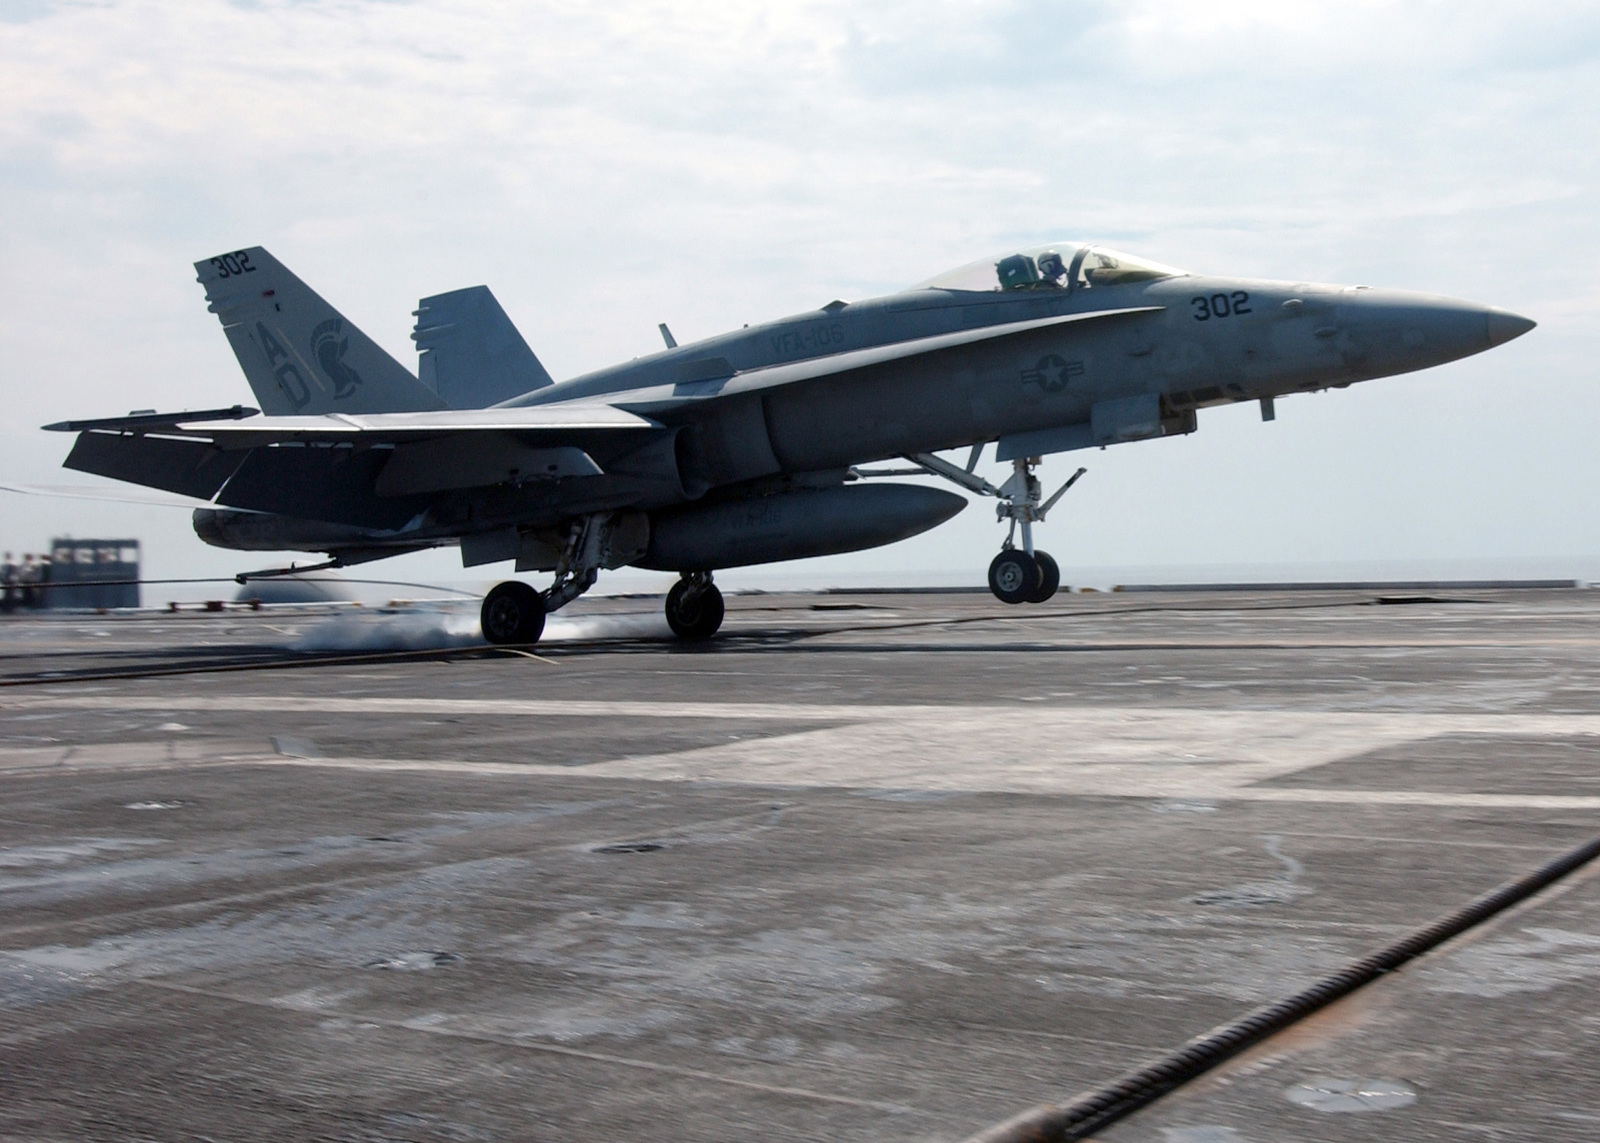 A US Navy F/A-18C Hornet aircraft from Strike Fighter Squadron 106 makes an arrested landing on the flight deck of the Nimitz Class Aircraft Carrier USS THEODORE ROOSEVELT (CVN 71) during operations in the Atlantic Ocean. The Super Hornet is an all-weather, carrier-based fighter/ attack aircraft that provides USN Carrier Strike Group with increased range, endurance and ordnance-carrying capabilities.(U.S. Navy official photo by Mass Communication SPECIALIST 3rd Class Randall Damm) (Released)